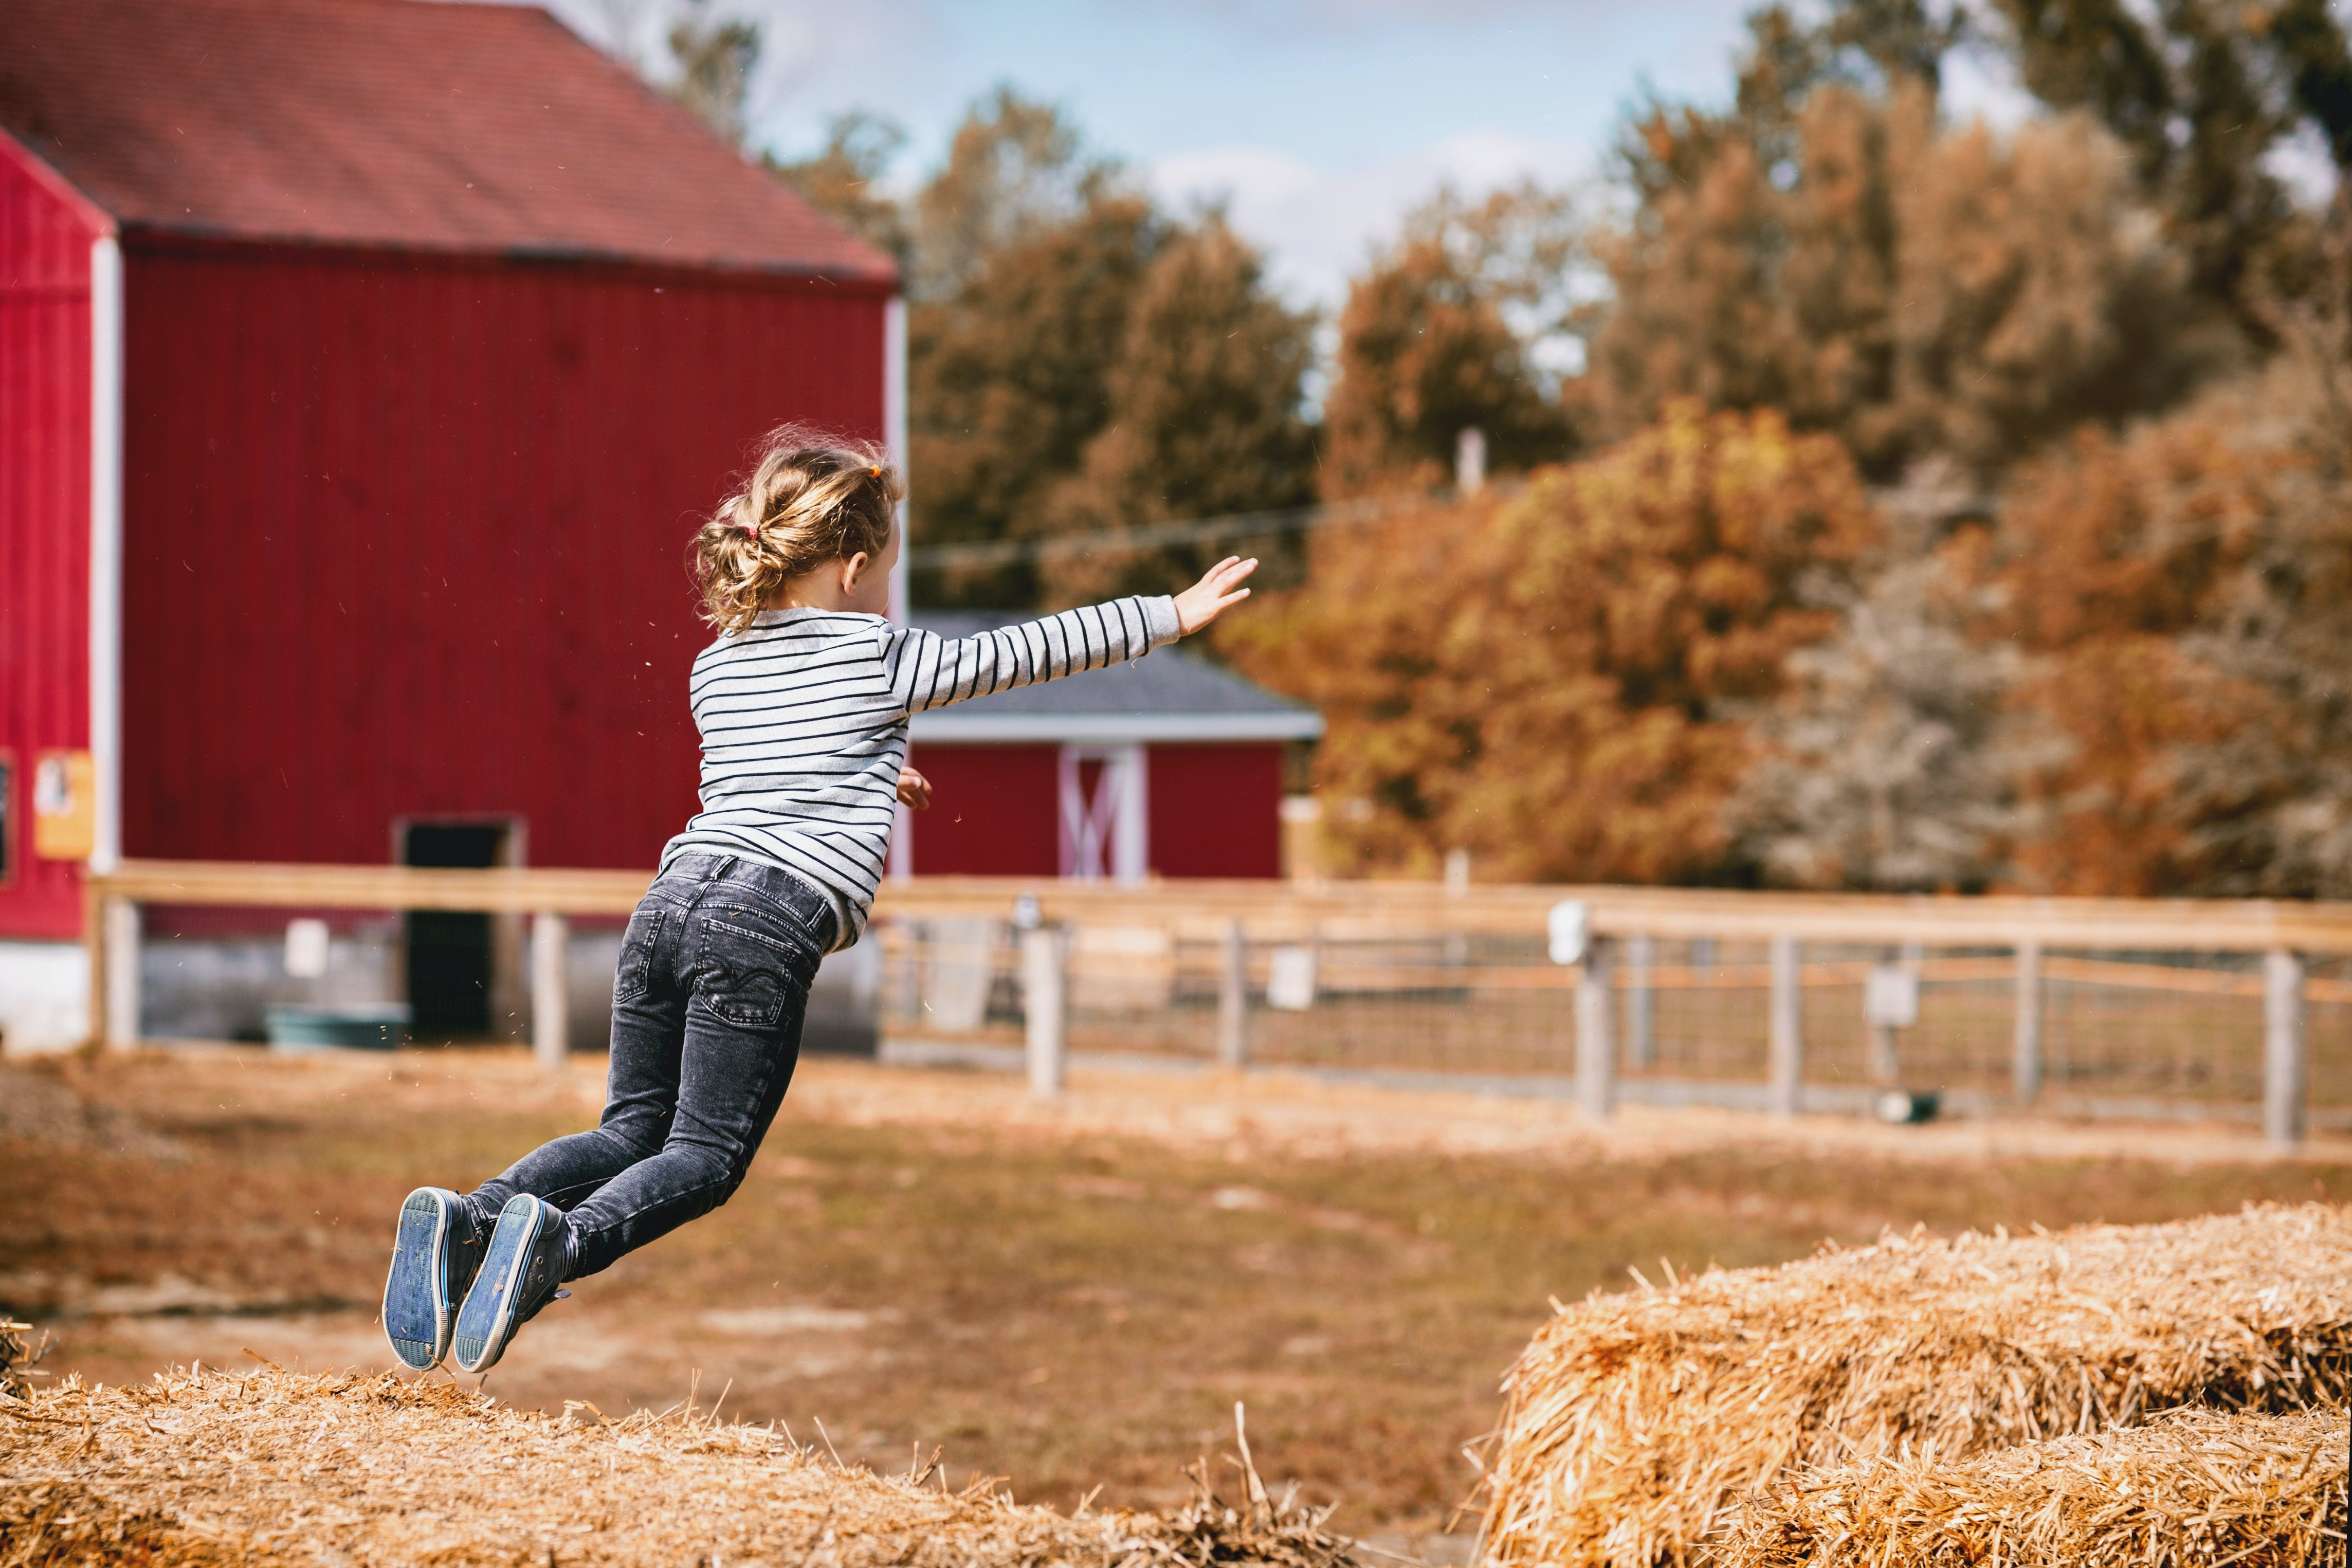 Girl Wearing White and Black Striped Long-sleeved Shirt Jumping Outdoor